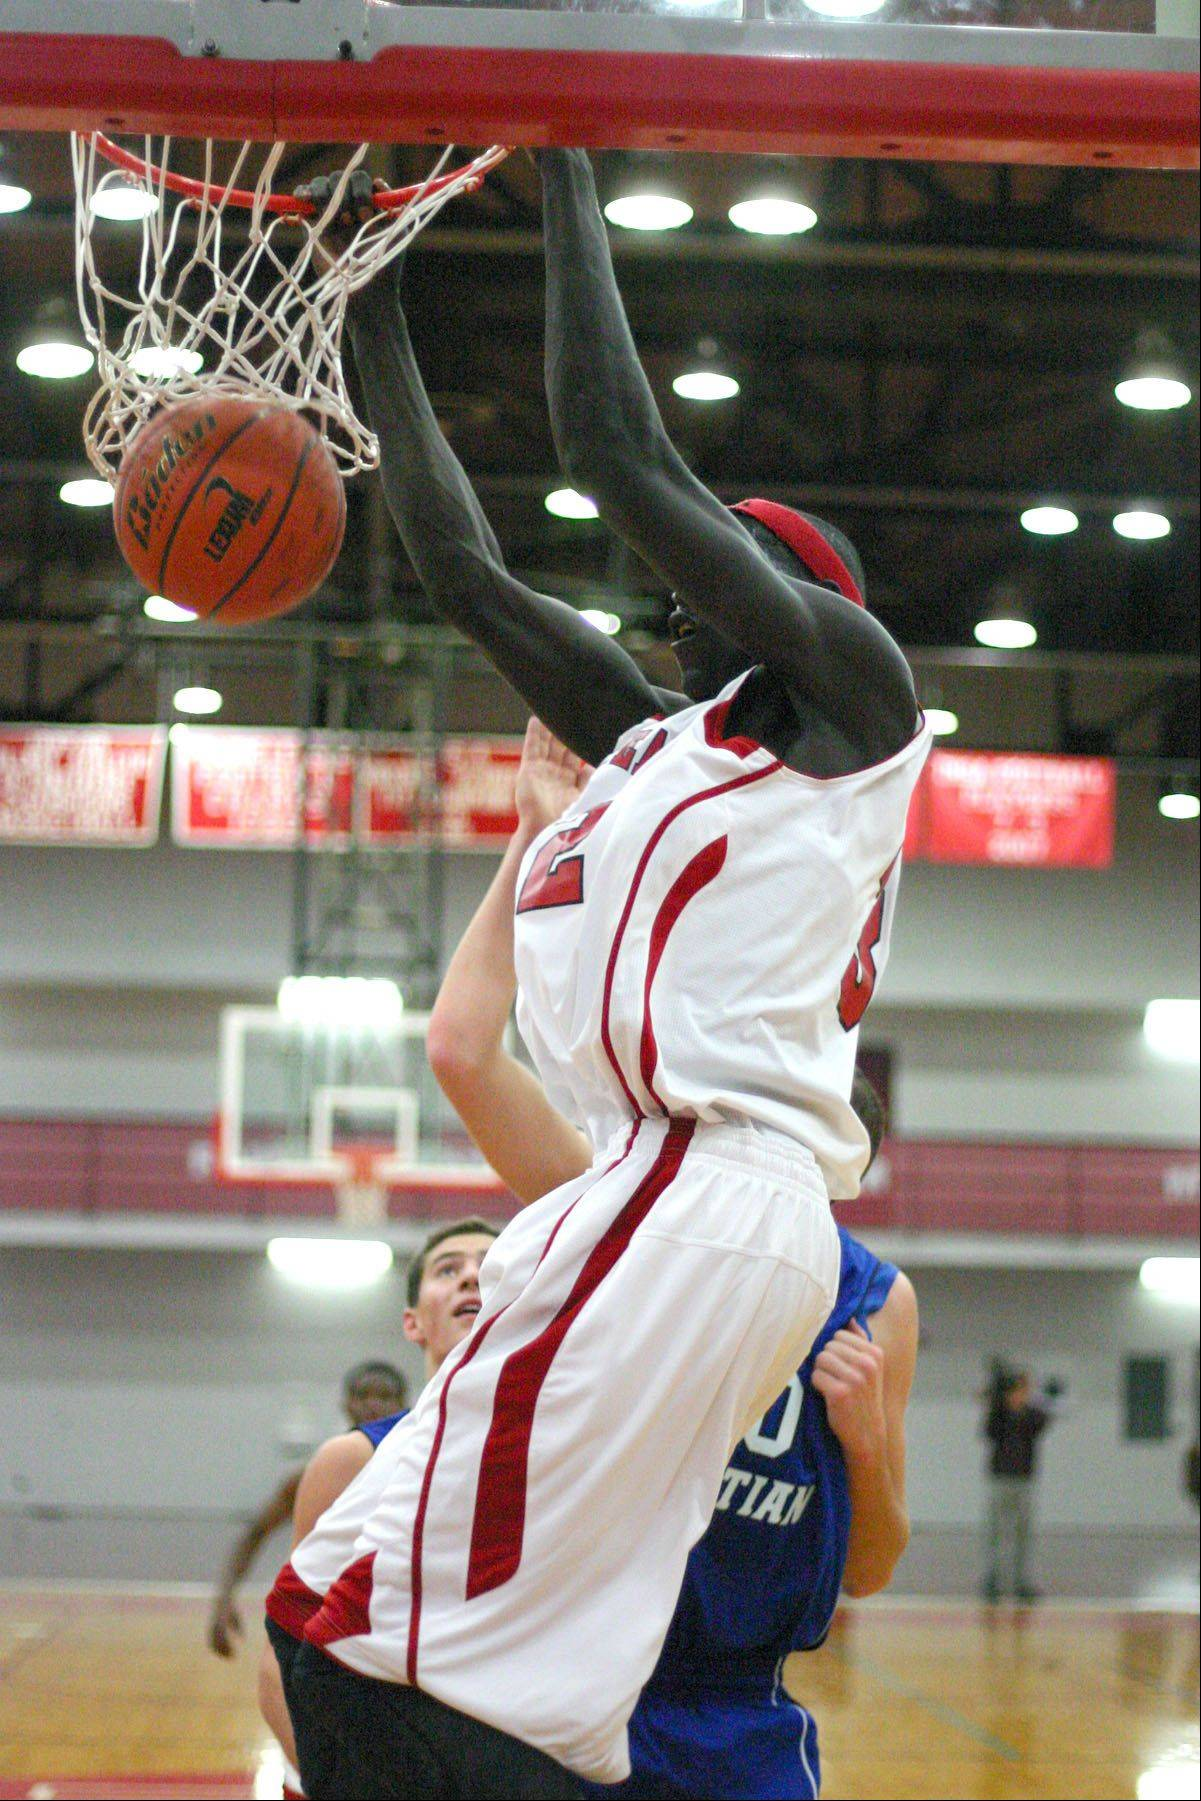 COURTESY OF MOOSEHEART Mooseheart junor Makur Puou dunks in Tuesday's 53-21 victory over Westminster Christian. Puou scored a game-high 16 points in the victory.